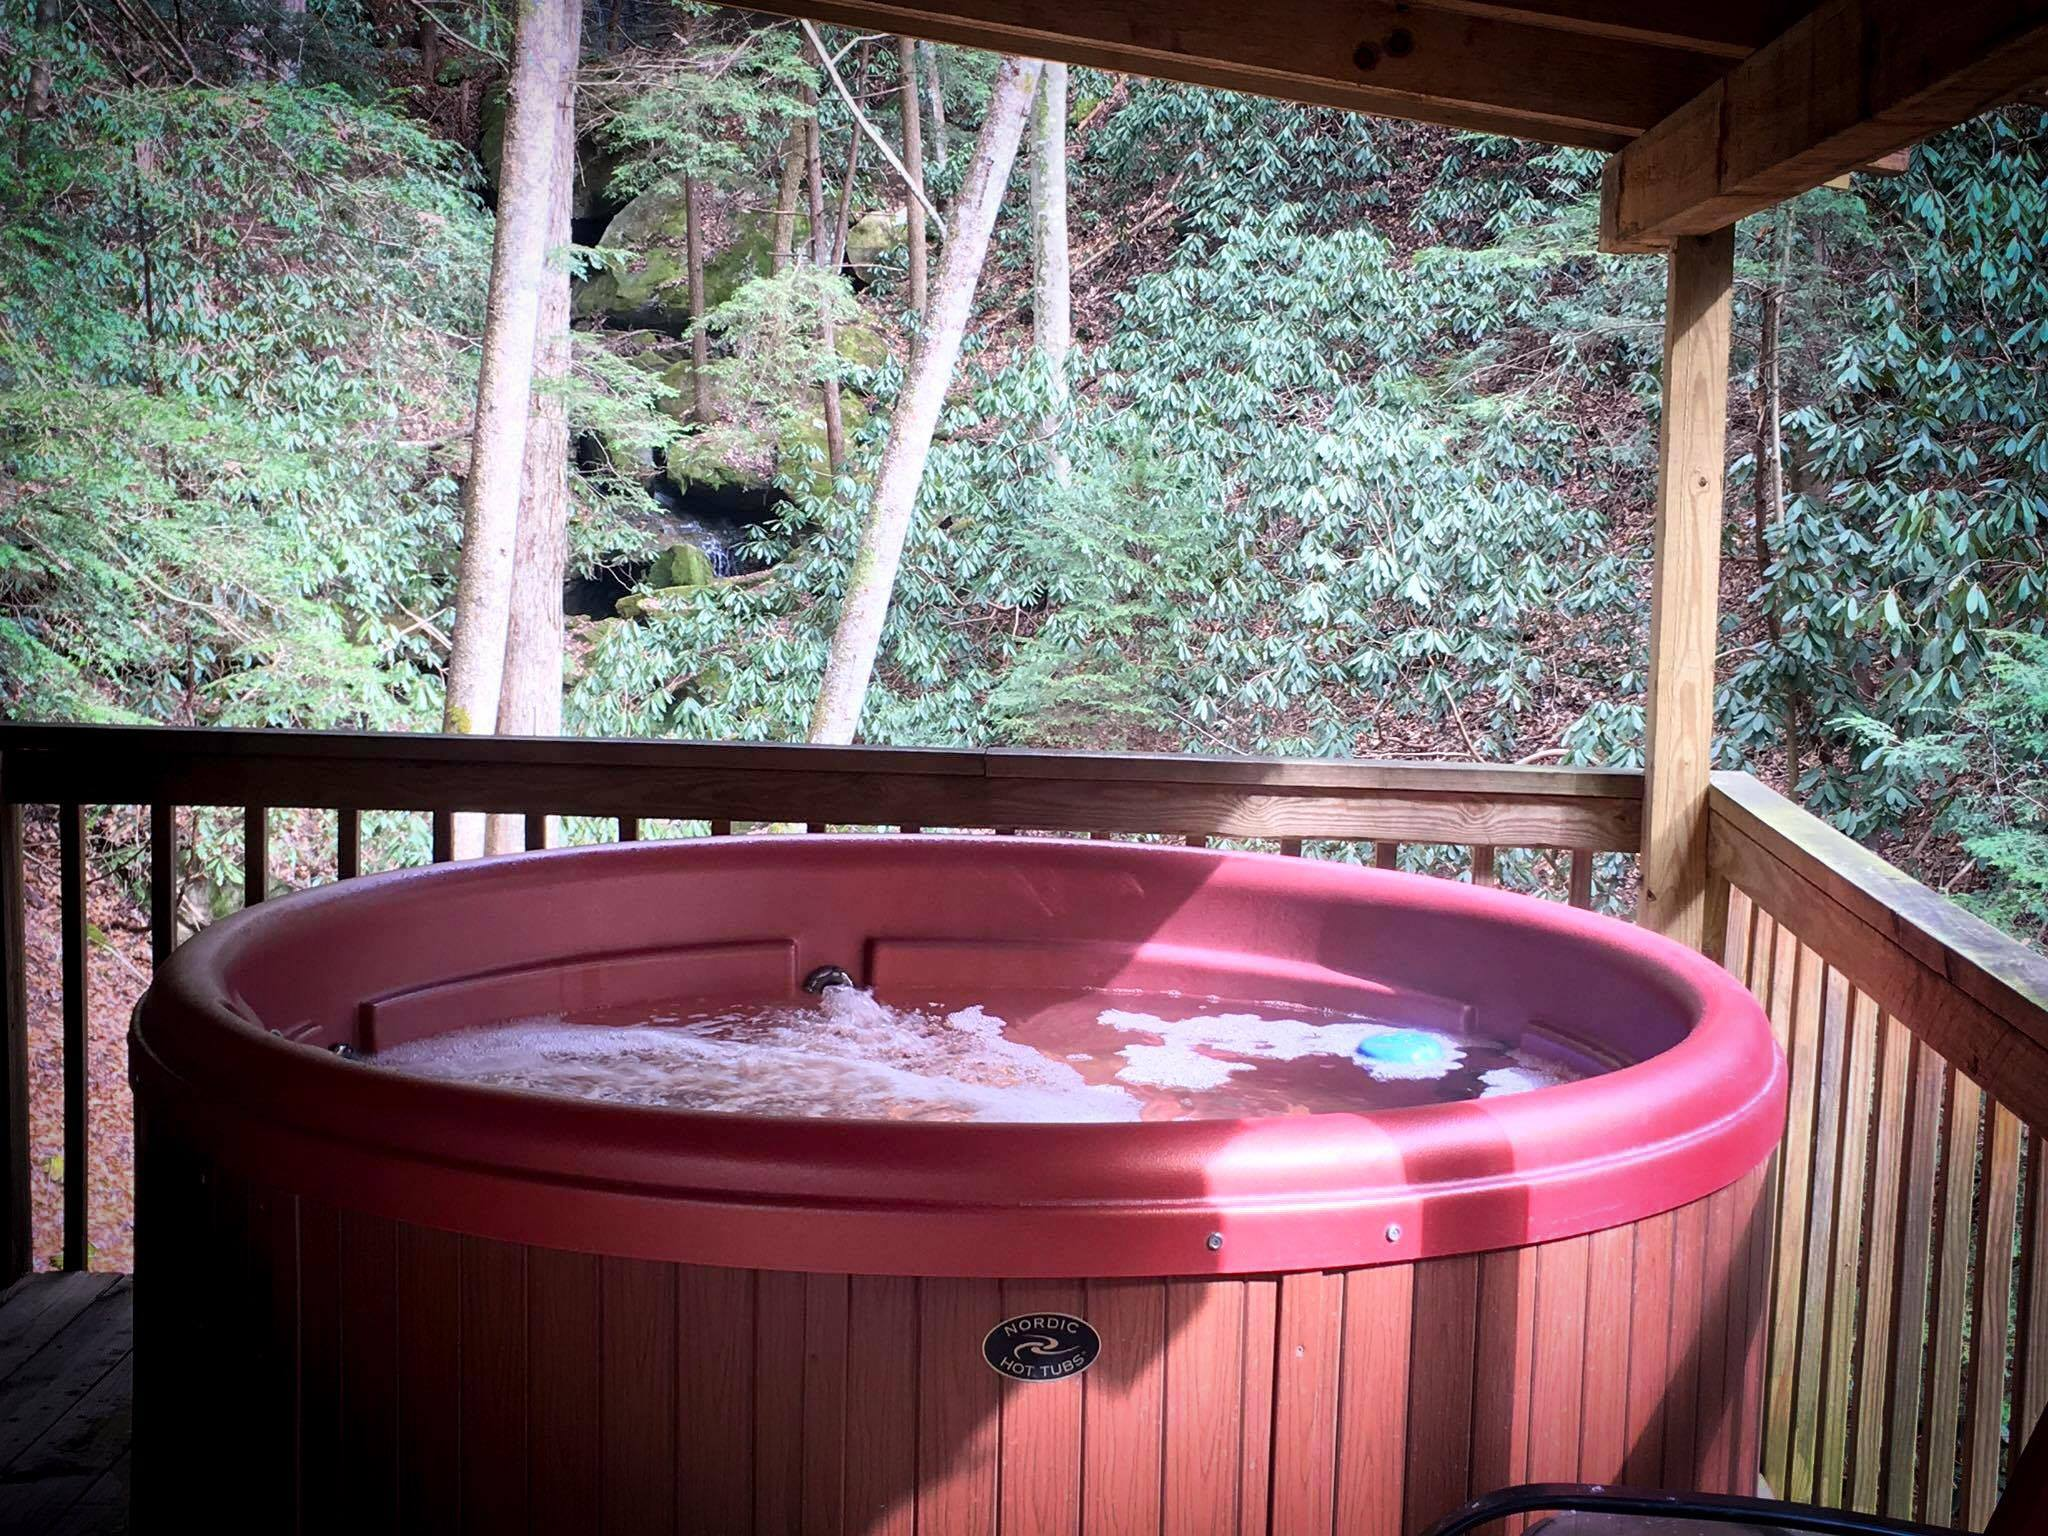 Peaceful Palace Hot Tub Red River Gorge